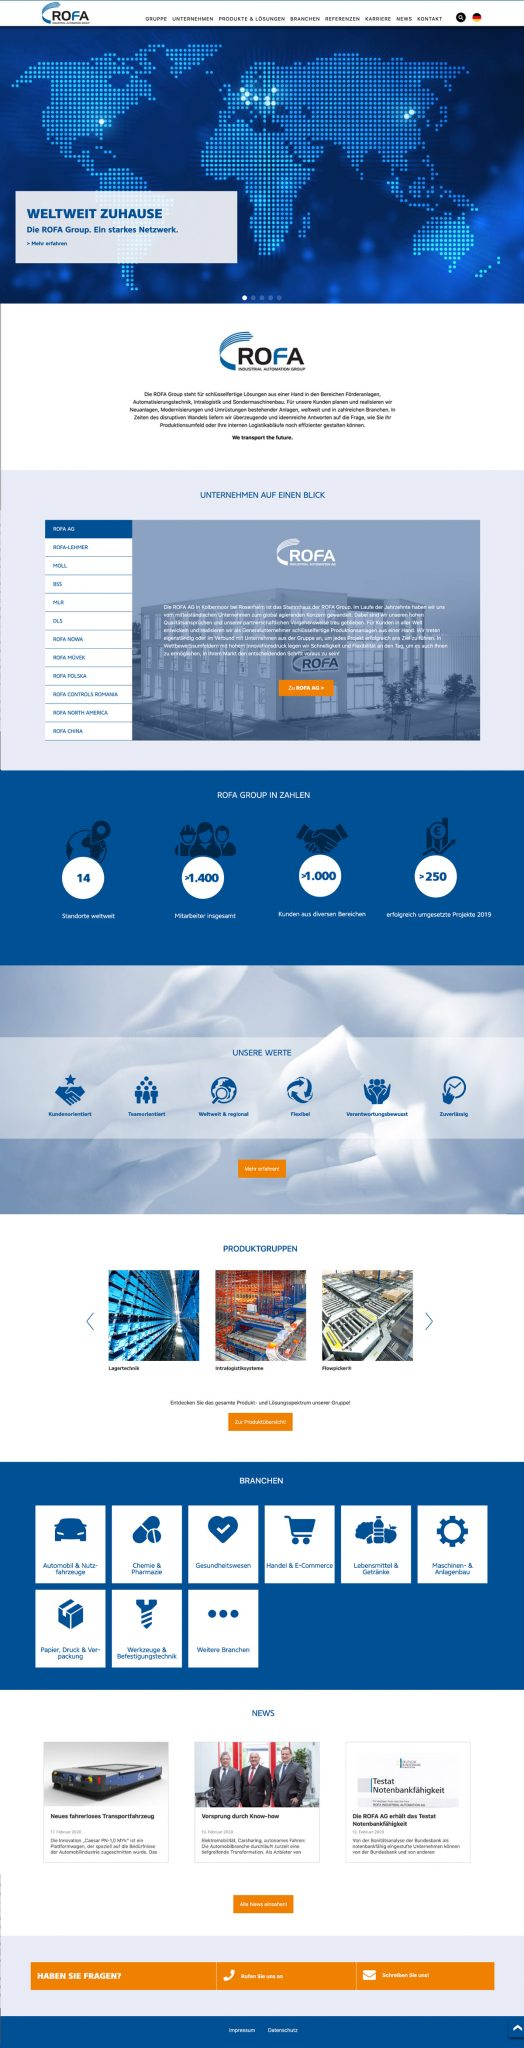 ROFA Group Corporate Website